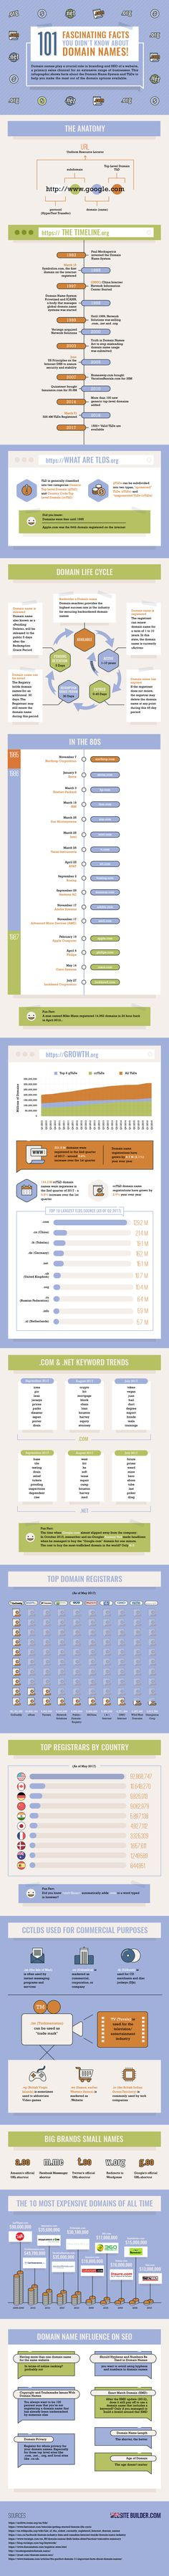 101 Fascinating Facts You Didn't Know About Domain Names - infographic